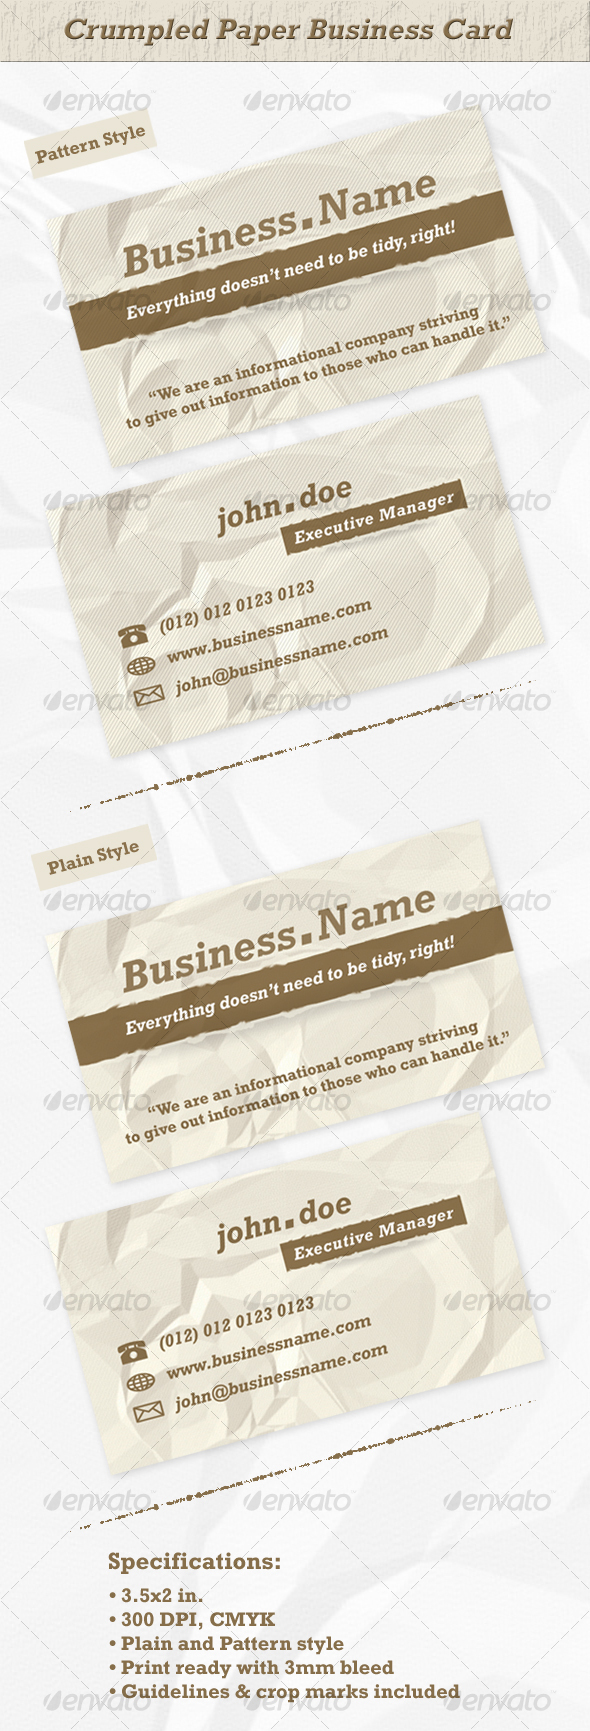 Crumpled Paper Business Card - Grunge Business Cards